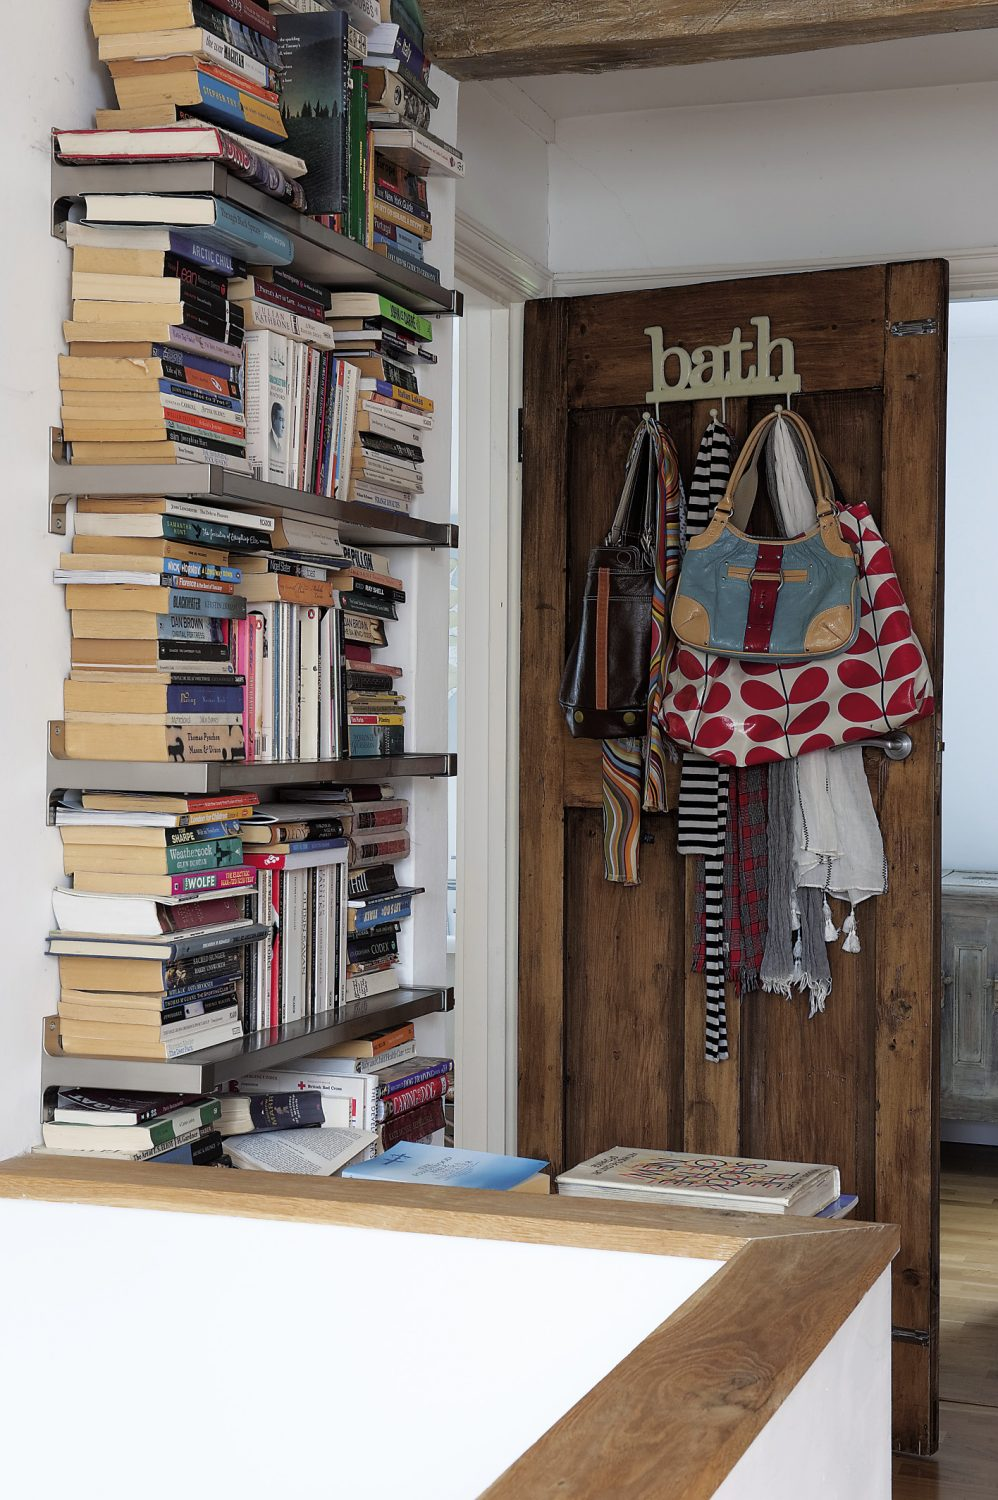 An eclectic mix of books has found its home on the landing